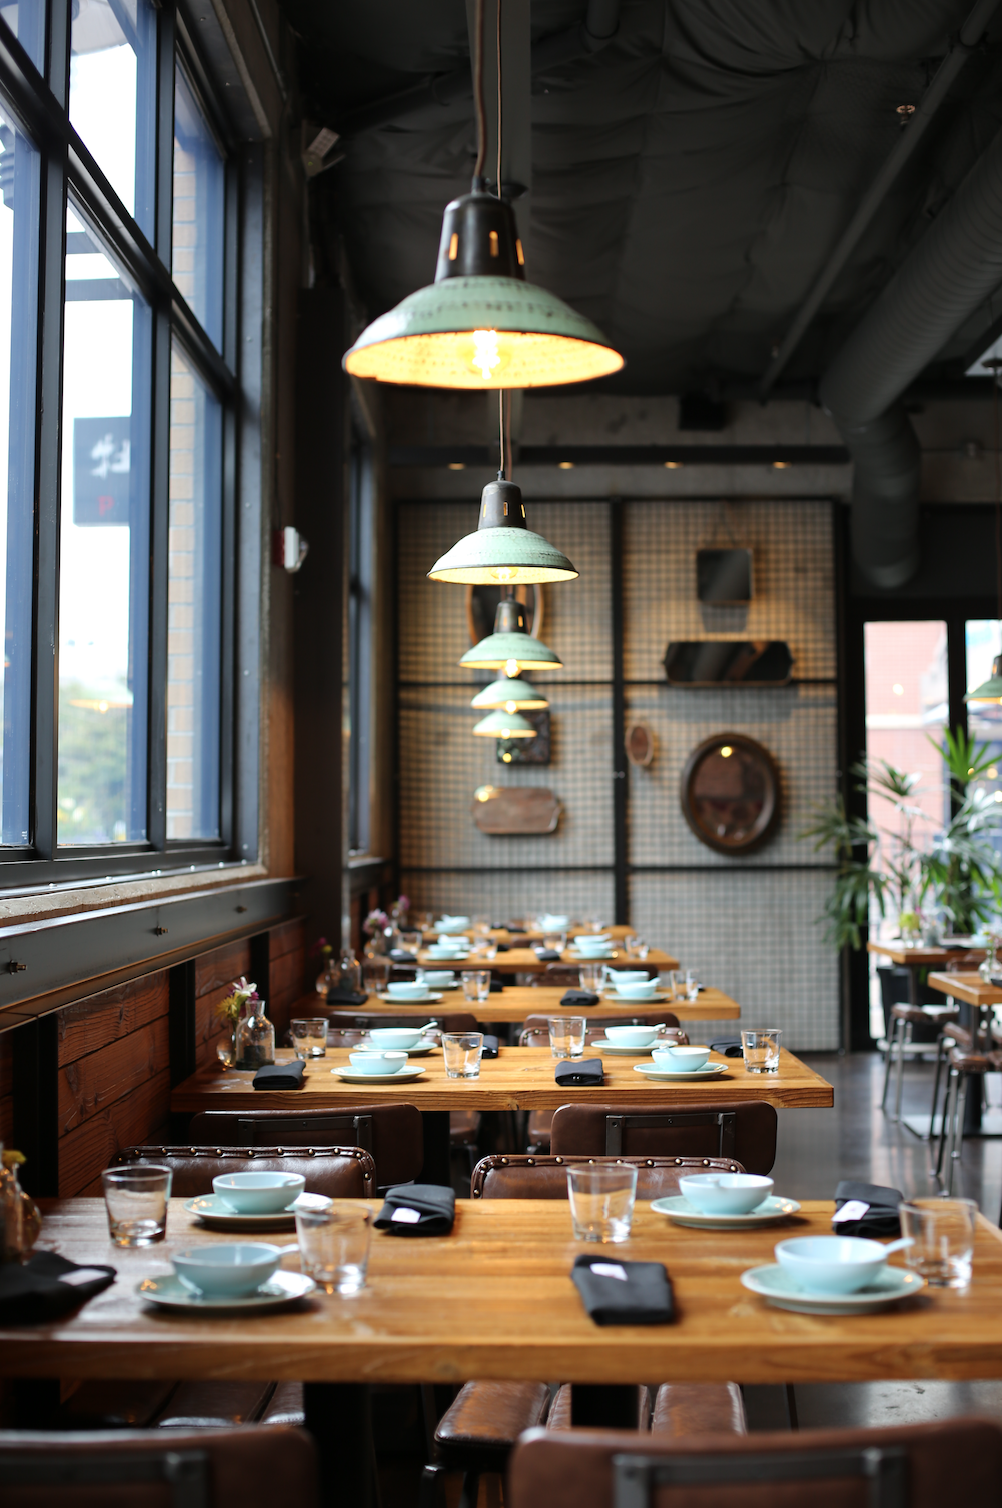 Peony kitchen modern chinese restaurant opens on main for Authentic chinese cuisine for the contemporary kitchen